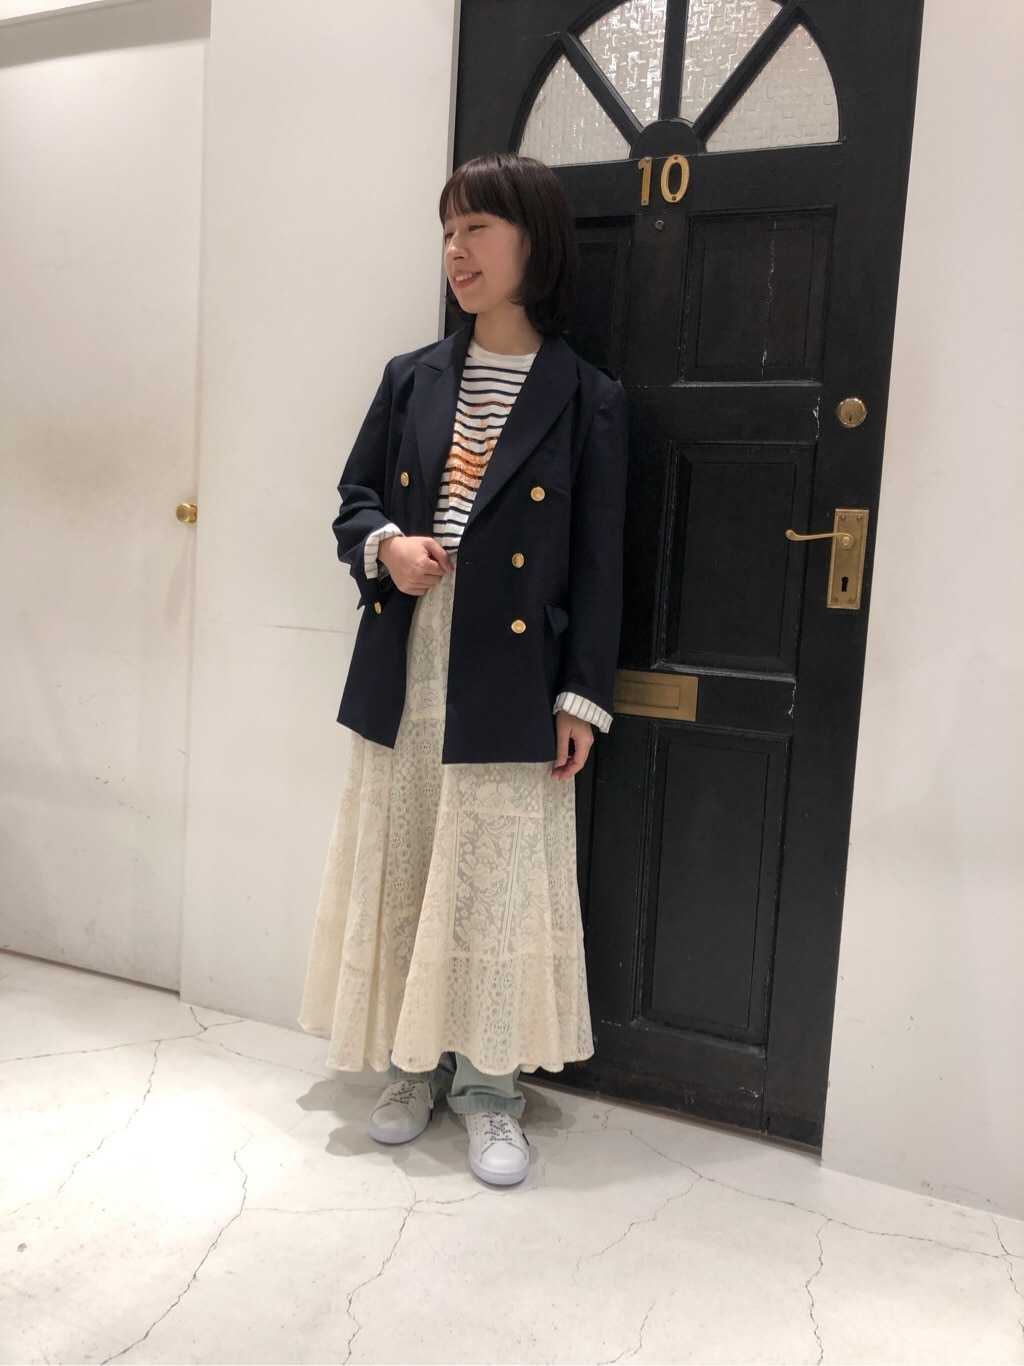 Dot and Stripes CHILD WOMAN ルクアイーレ 身長:150cm 2020.04.08